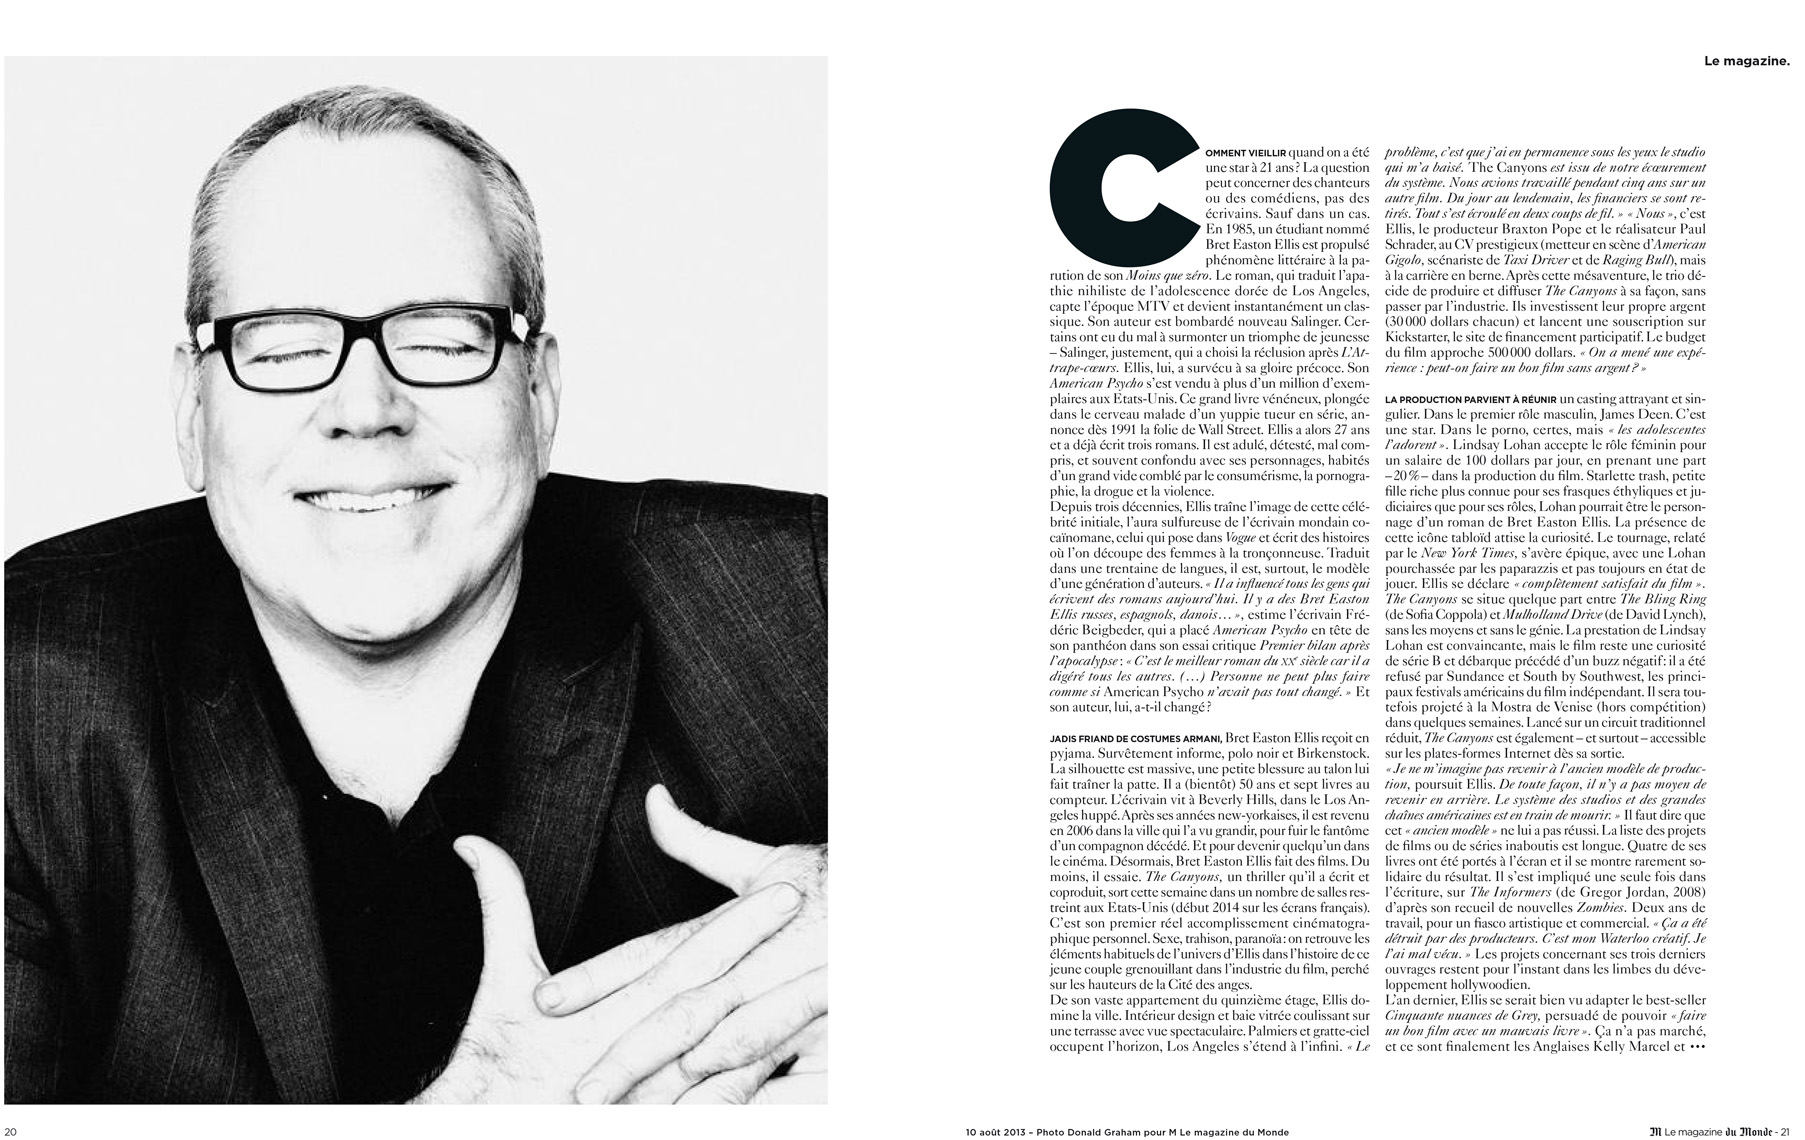 le monde published bret easton ellis 3.jpg